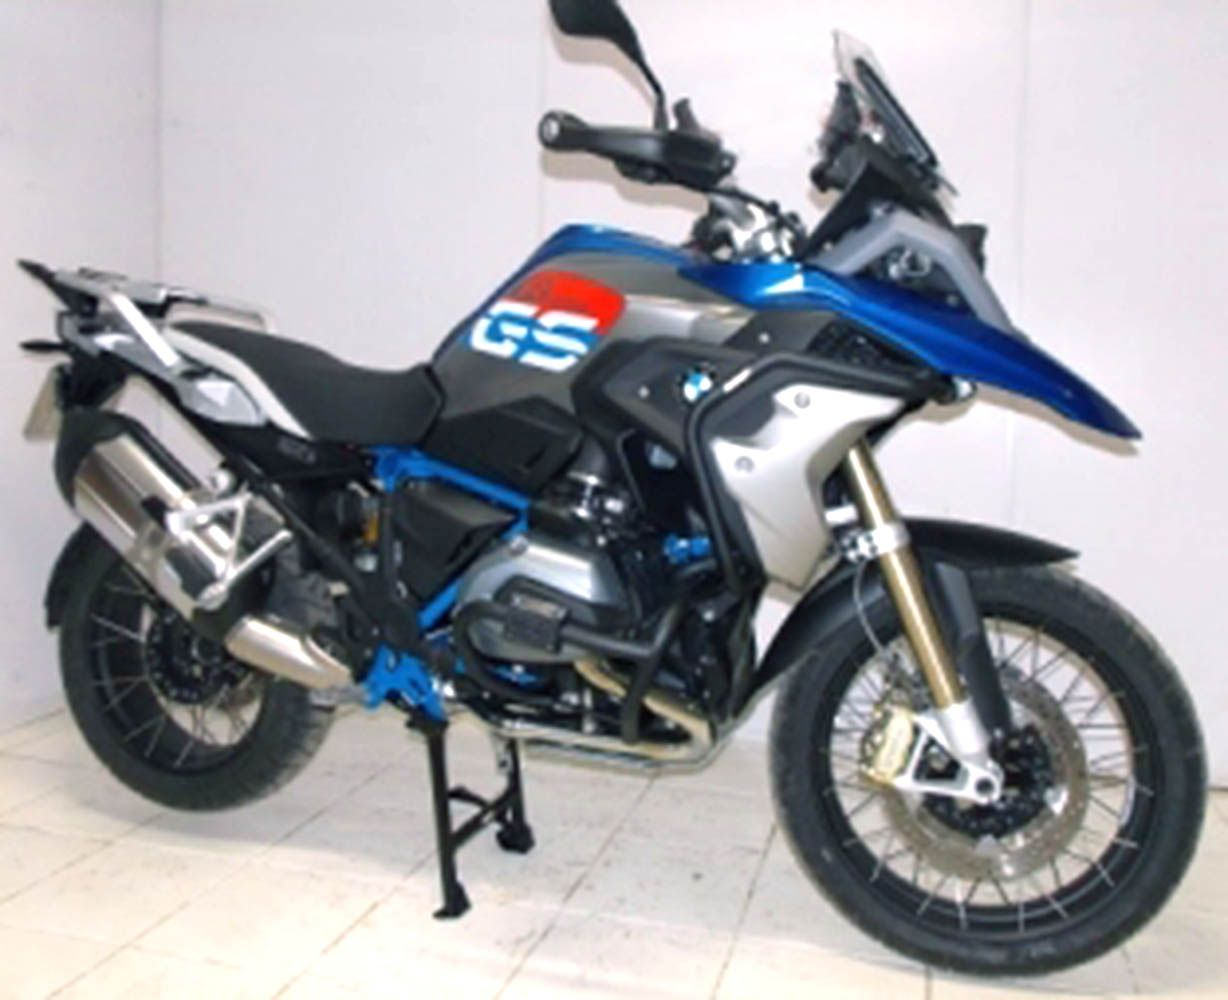 Cavalete Central Bmw Rallye R 1200 Gs 2017/ Chapam 10658